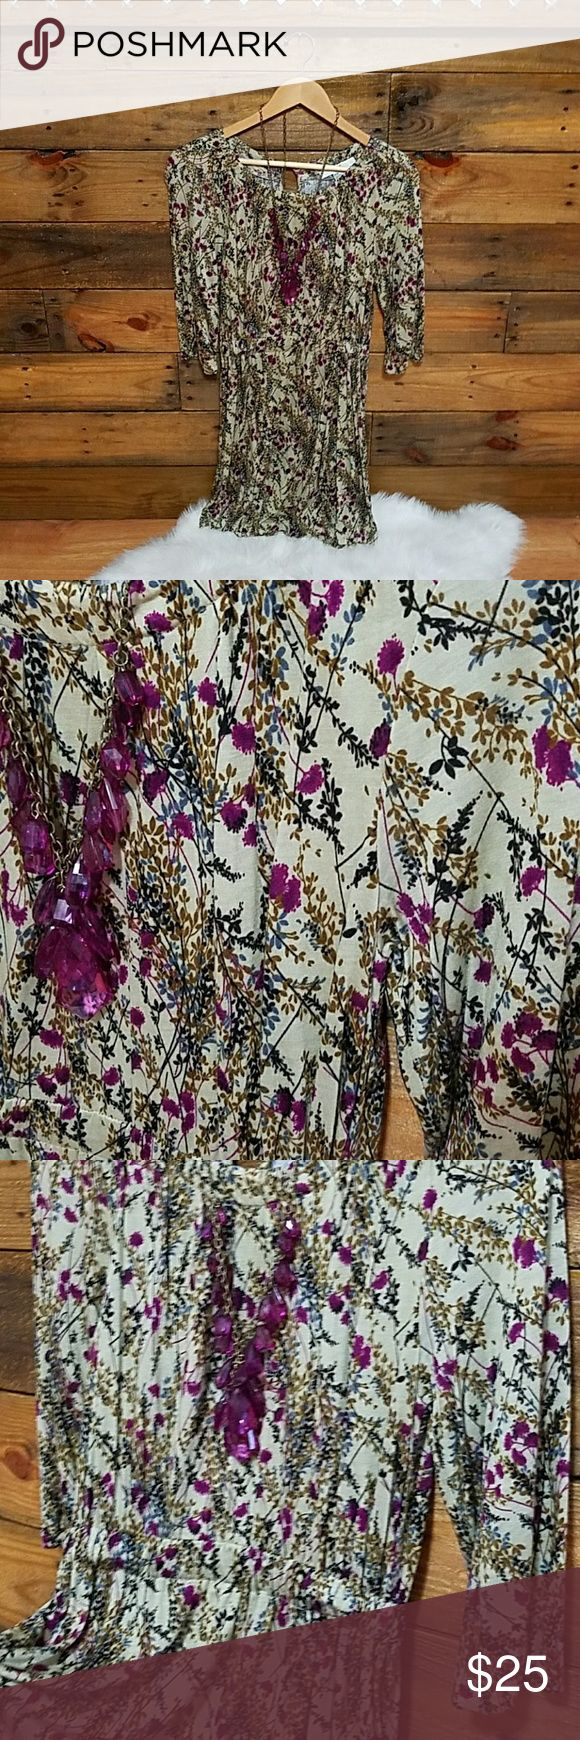 """Forever 21 floral dress Forever 21 floral mini dress with 3/4 sleeves, elastic waist. Size medium (I would say it fits a size 4 best). Approximately 34-35"""" length on hanger. Colors are best described as a creamy, light olive colored background with fuscia/purple/gold/black/blue floral pattern (see photos). Never worn, perfect condition. Super cute with thigh high riding boots. Forever 21 Dresses Long Sleeve"""